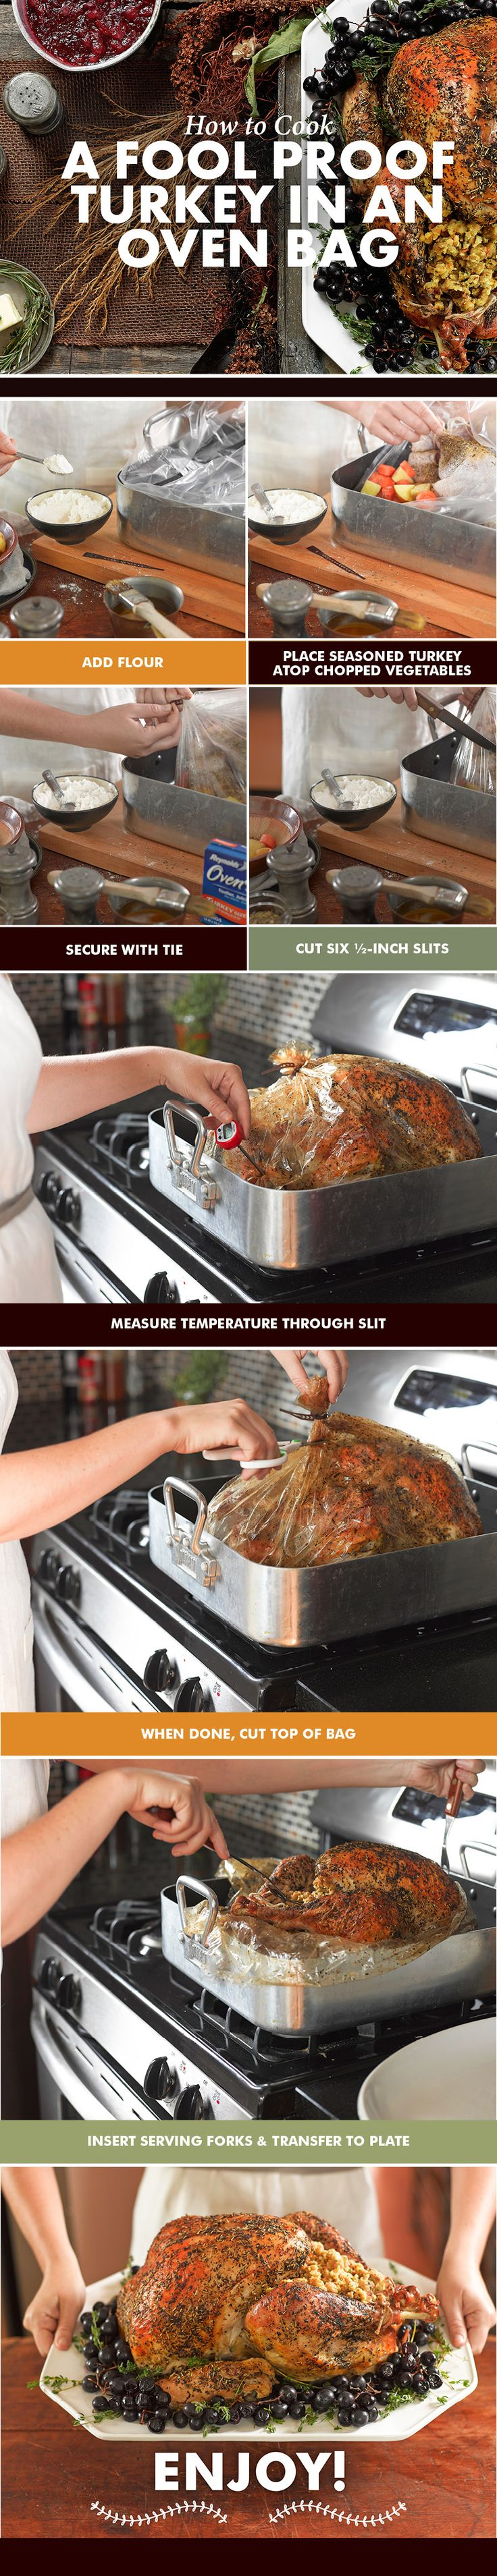 Make your Turkey in an Oven Bag this year. It's easier than you think and keeps the turkey moist! #thanksgiving #turkey #ovenbag